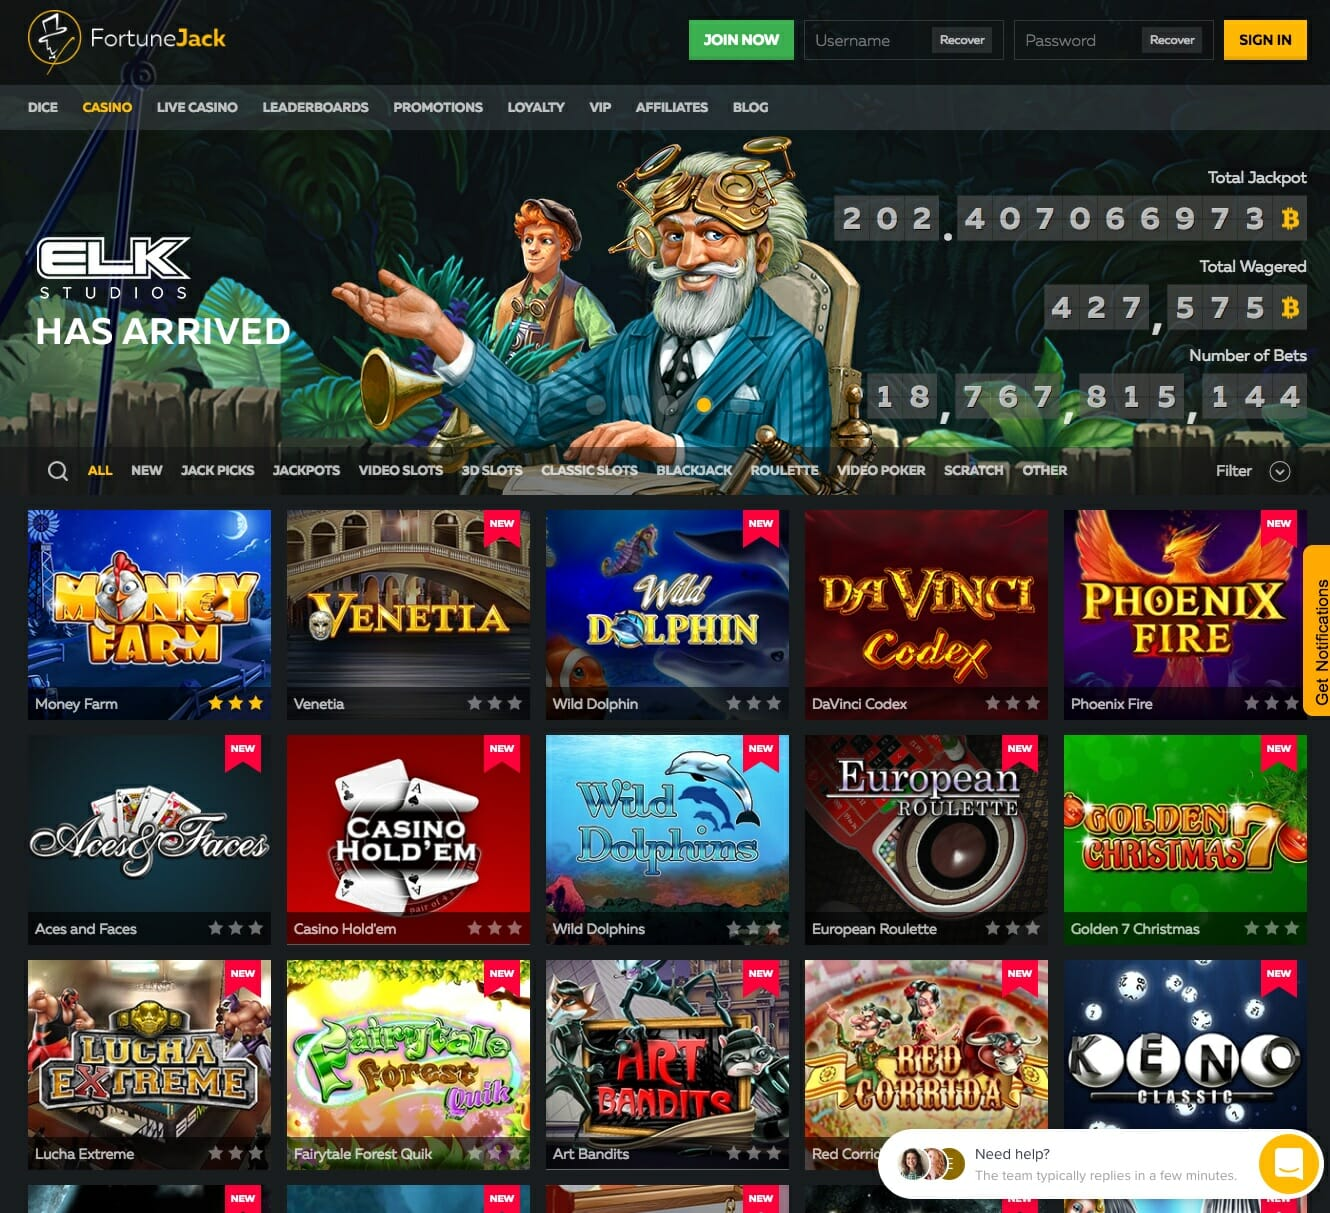 Fortunejack Review And No Deposit Bonus 2020 With Free Spins